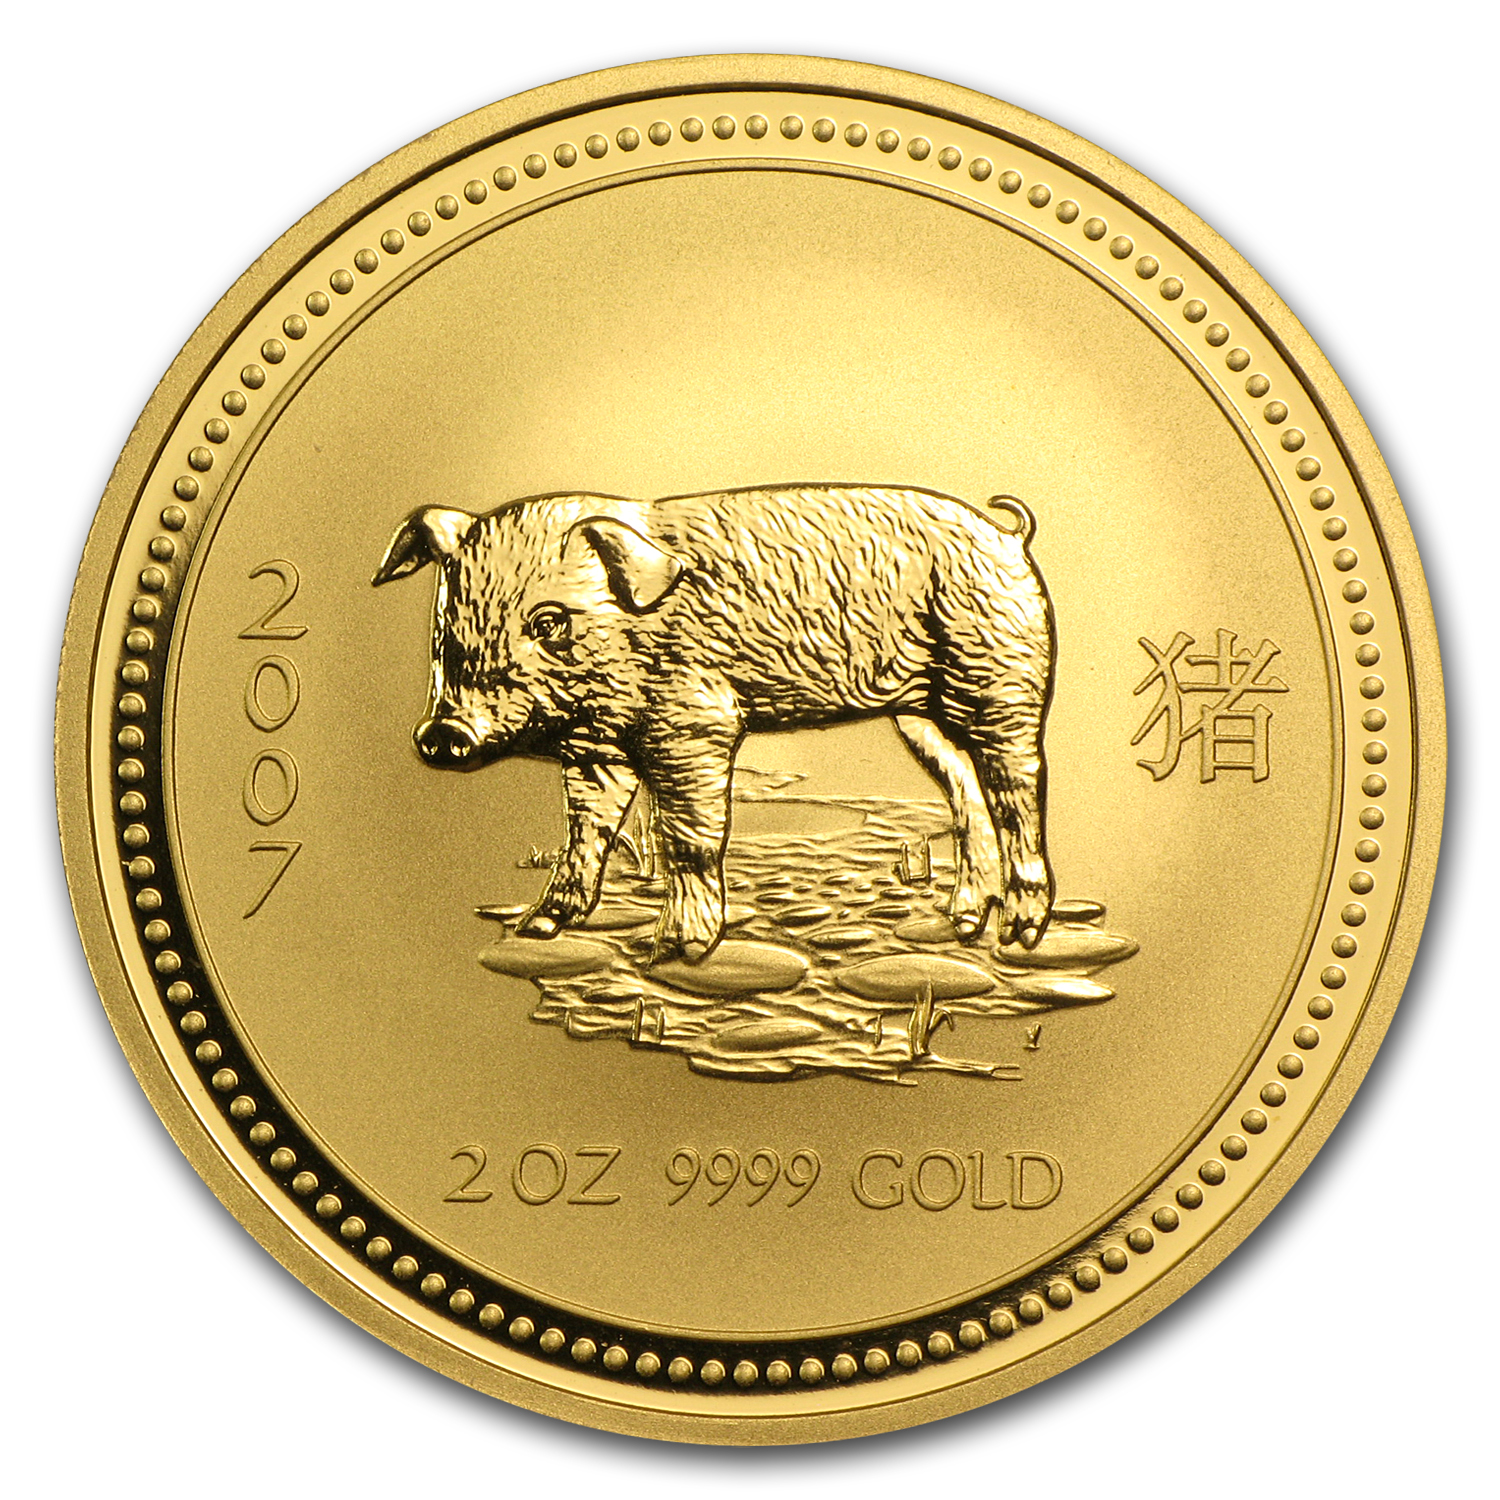 2007 2 oz Gold Lunar Year of the Pig BU (Series I)